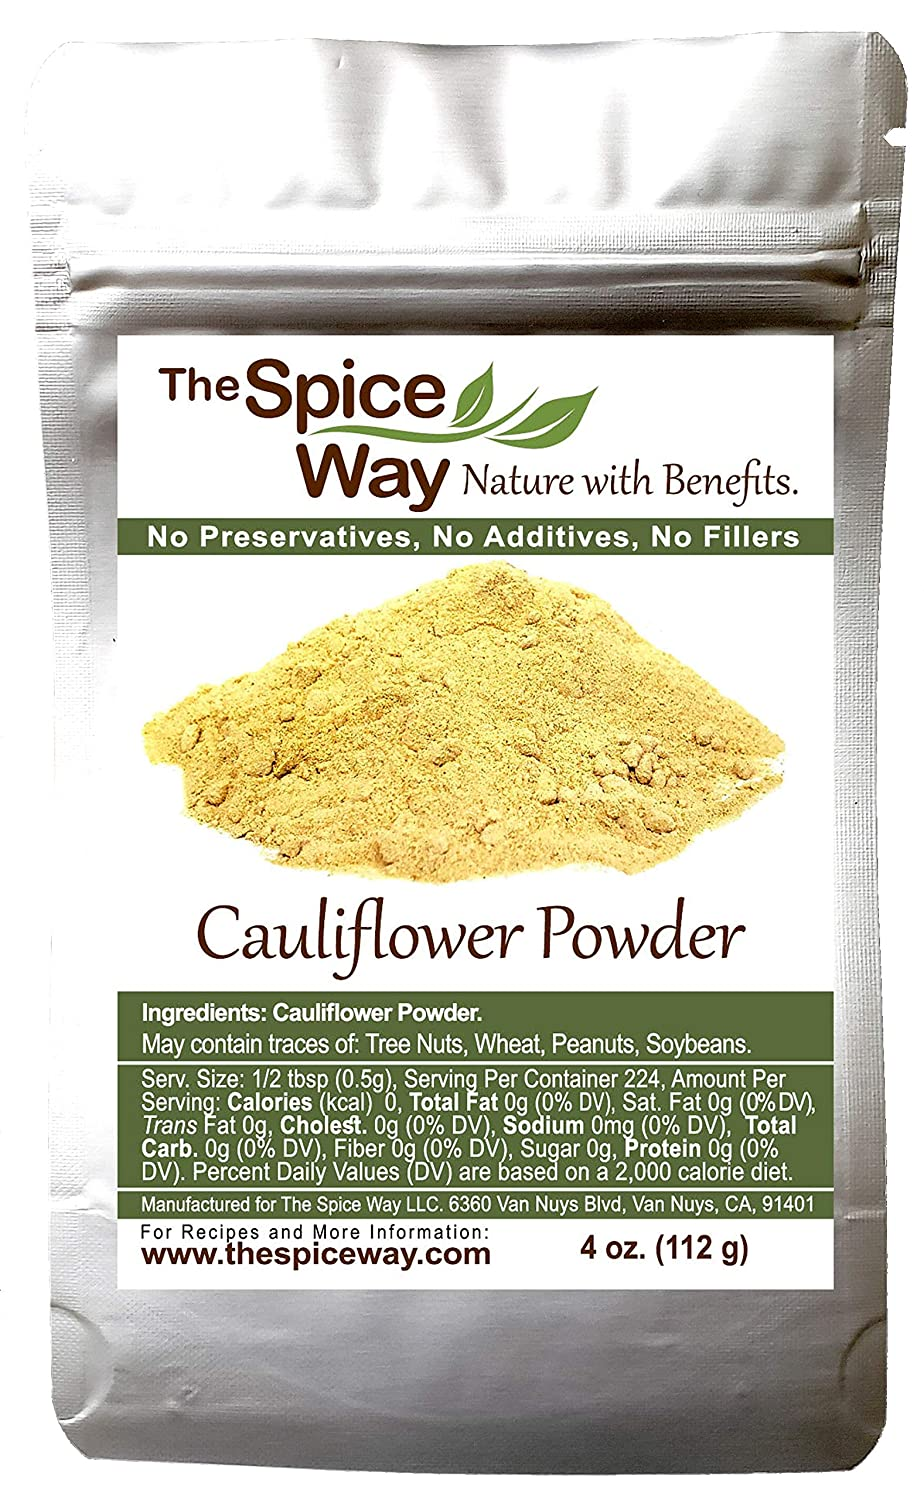 The Spice Way Pure Cauliflower Powder - great for keto diet 4 oz